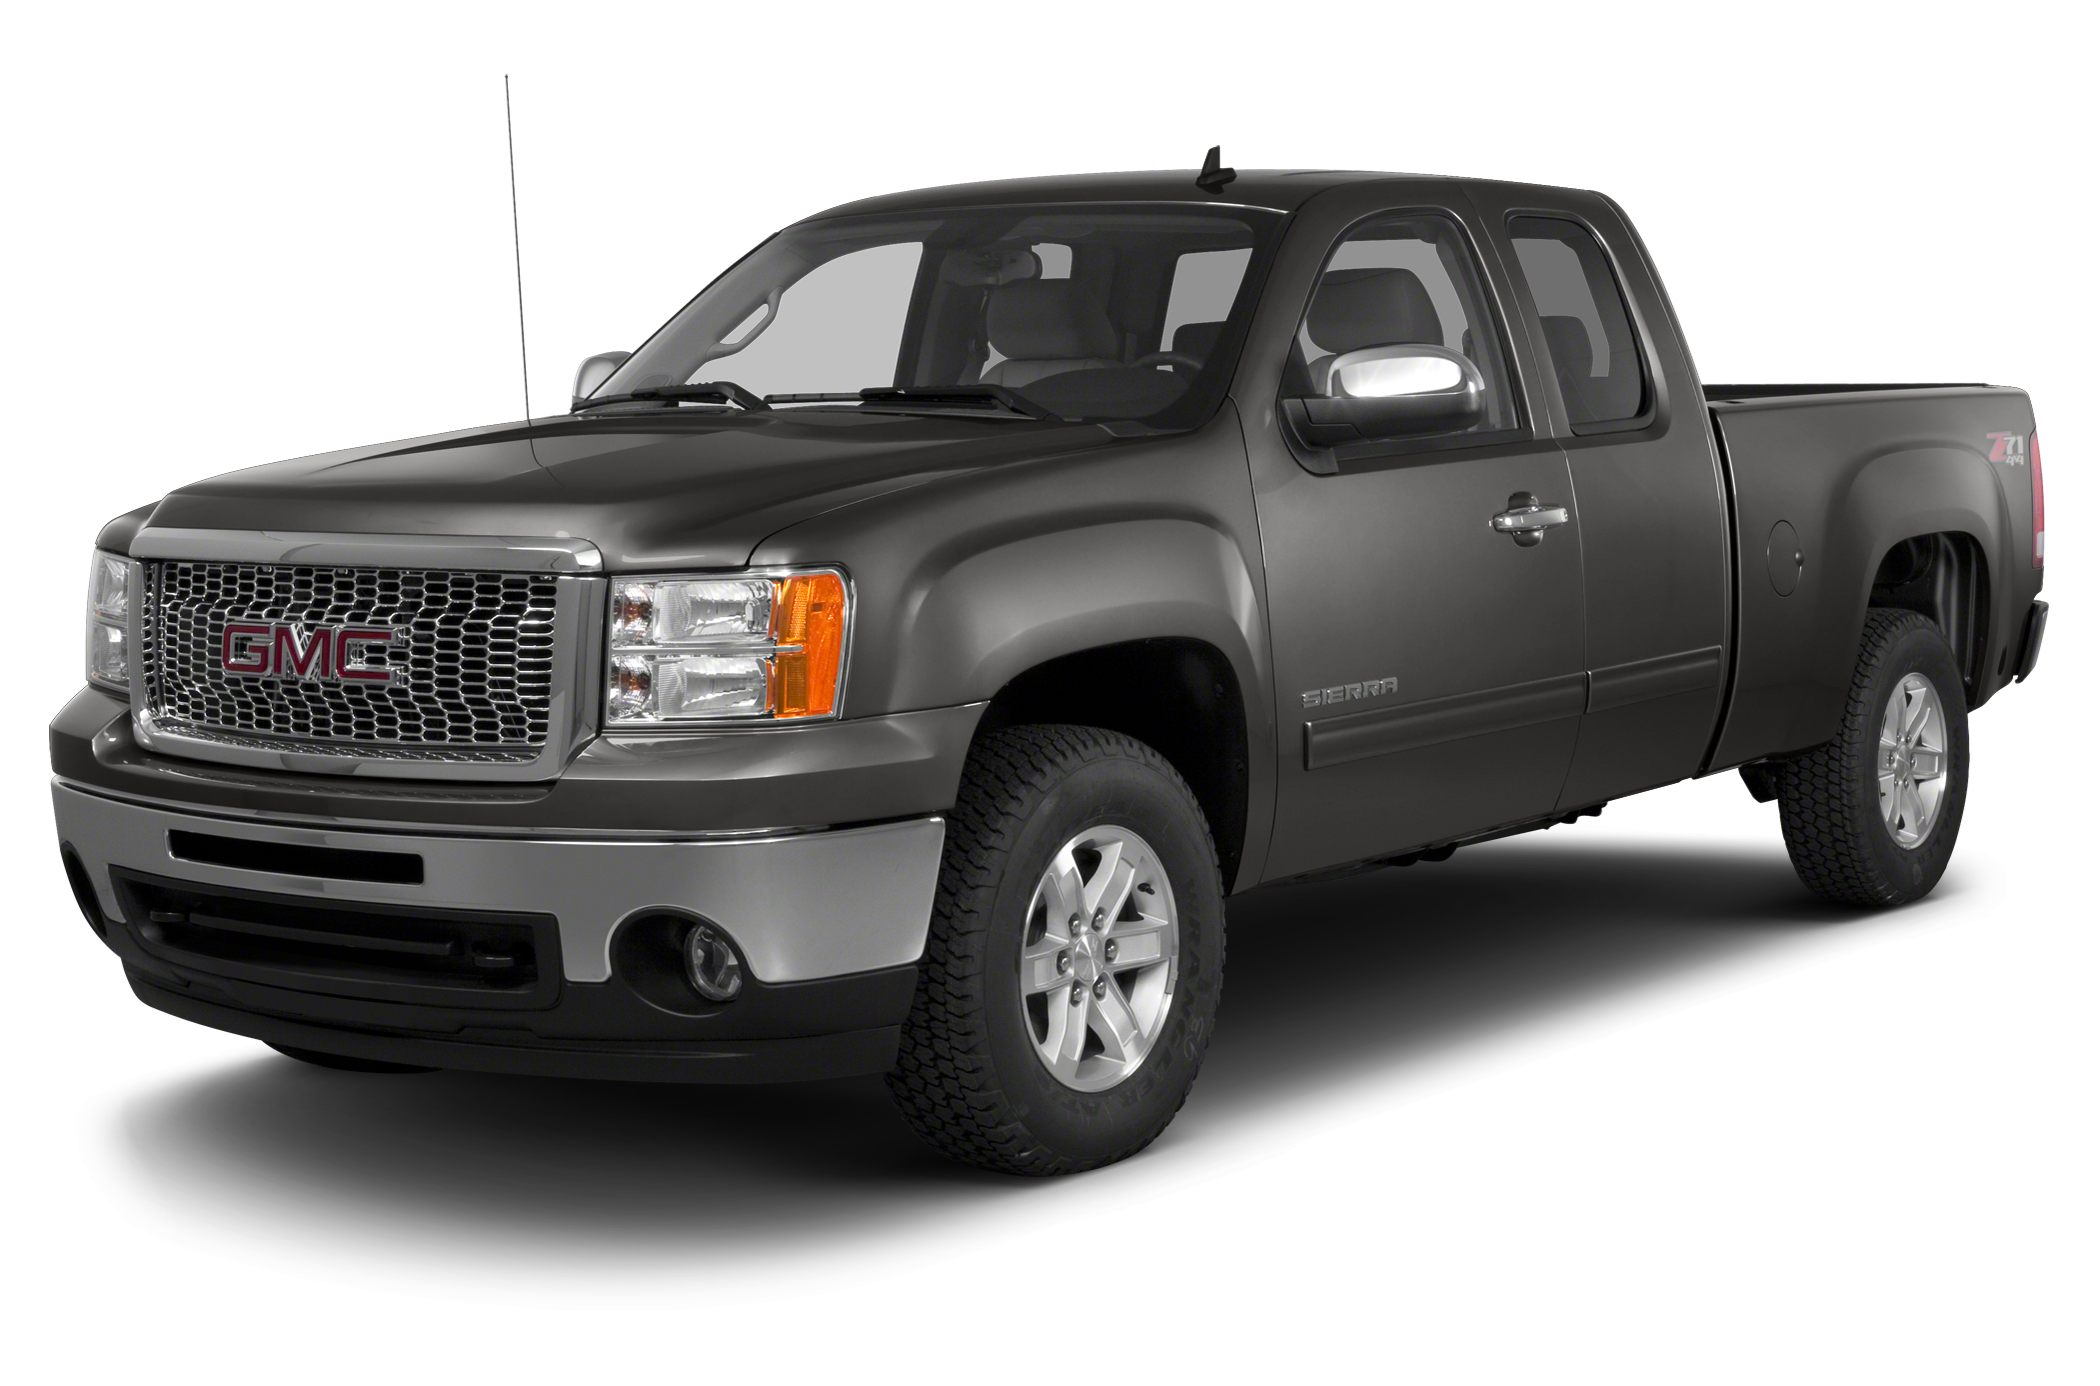 2013 GMC Sierra 1500 Work Truck 4x4 Extended Cab 8 ft box 157 5 in